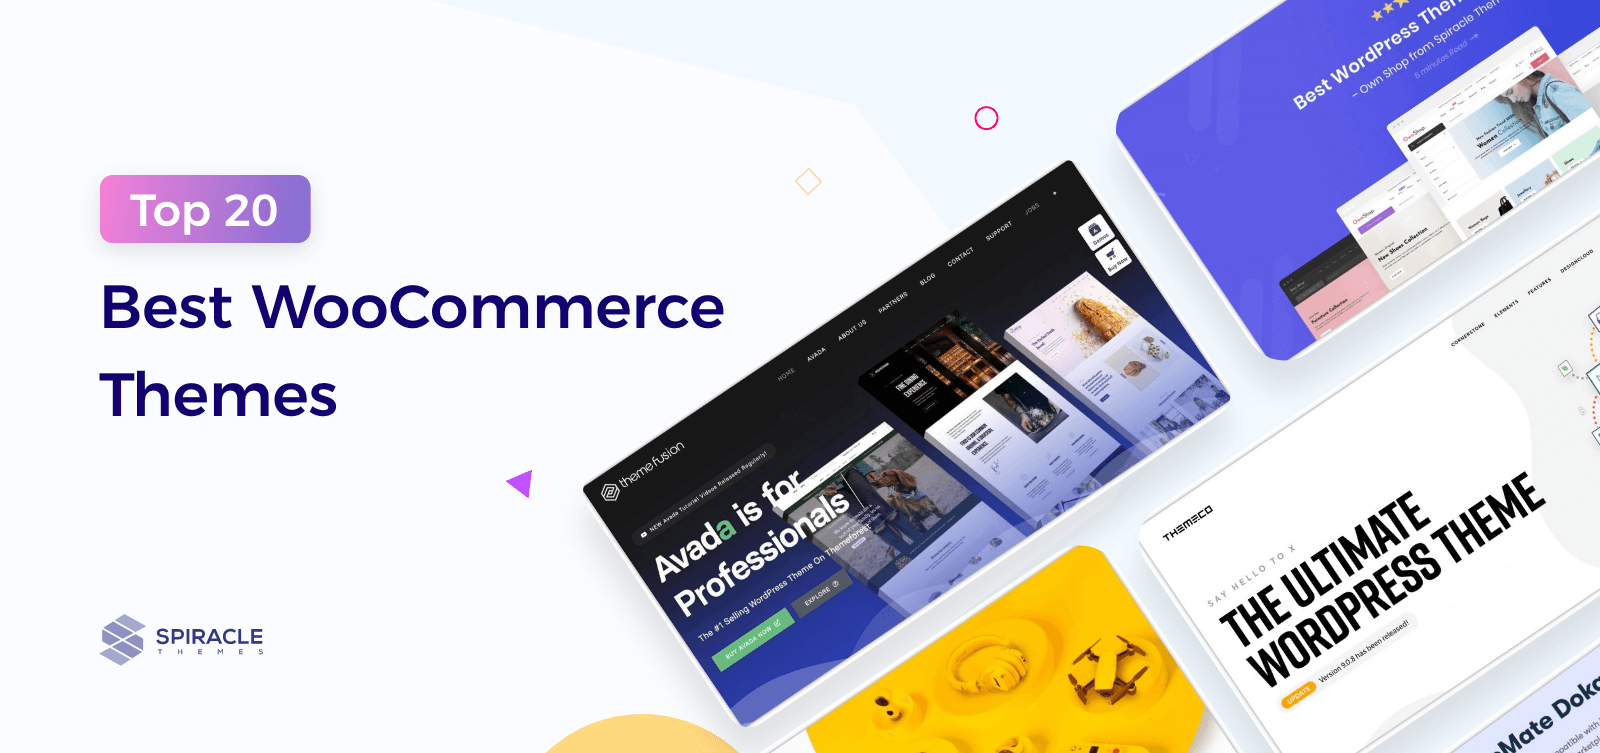 Top 20 Best WooCommerce Themes for Your eCommerce Store